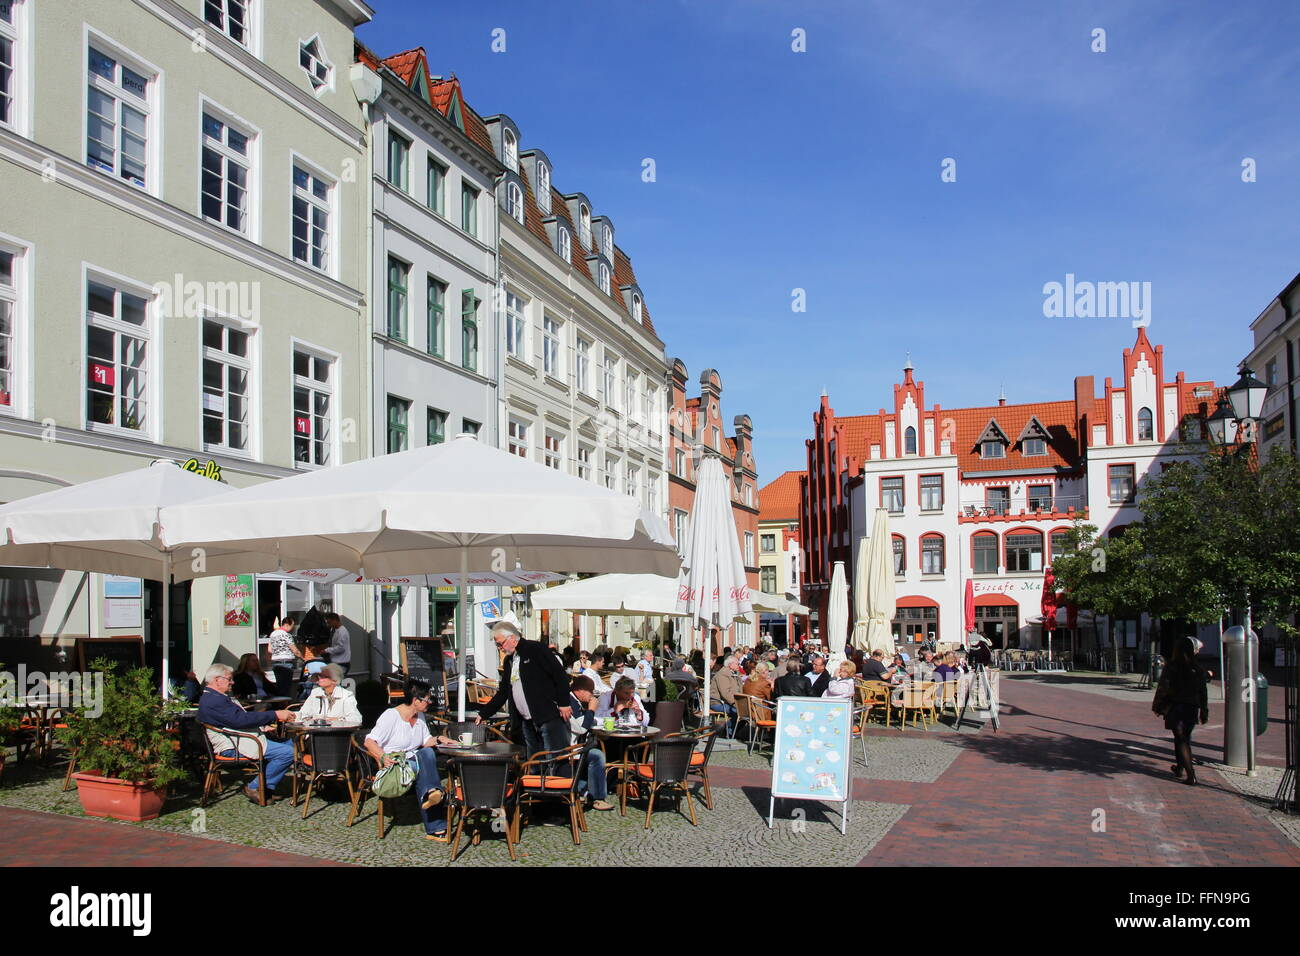 geography / travel, Germany, Mecklenburg-West Pomerania, Wismar, market-place, street cafe, Additional-Rights-Clearance - Stock Image